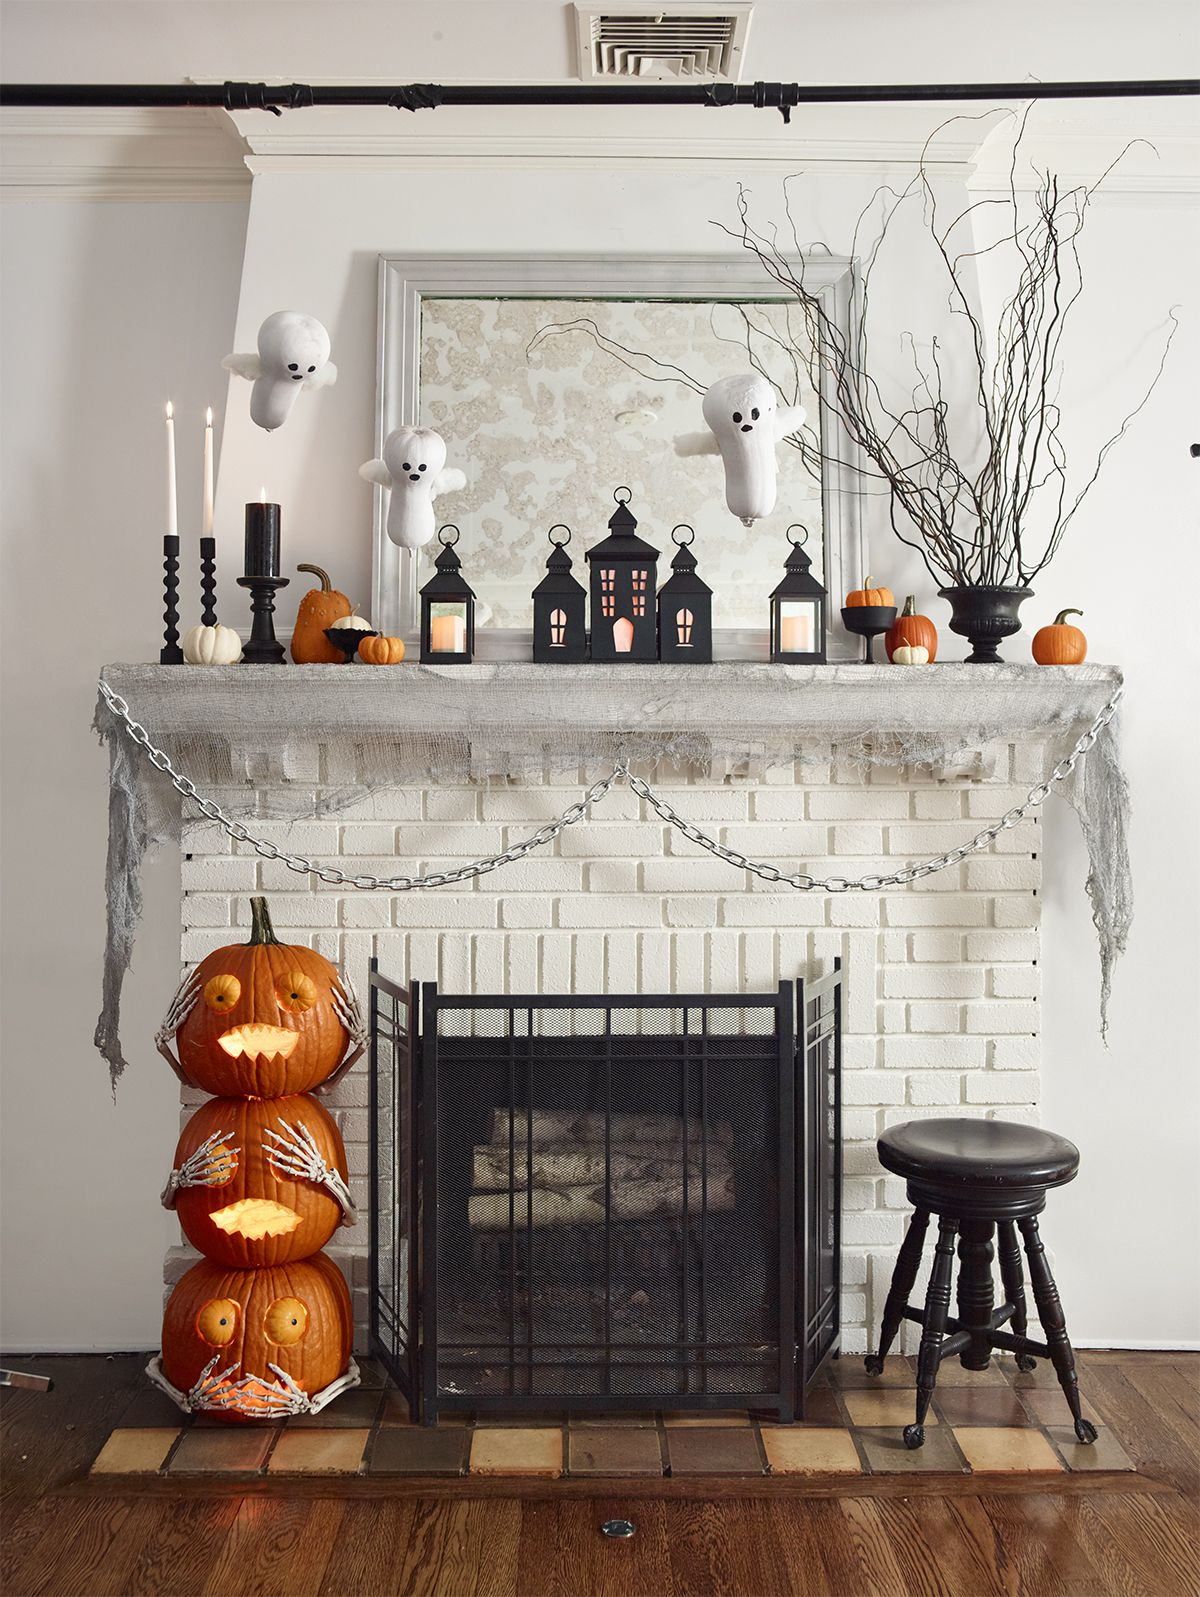 50 DIY Halloween Decorations , How to Make Halloween Decorations